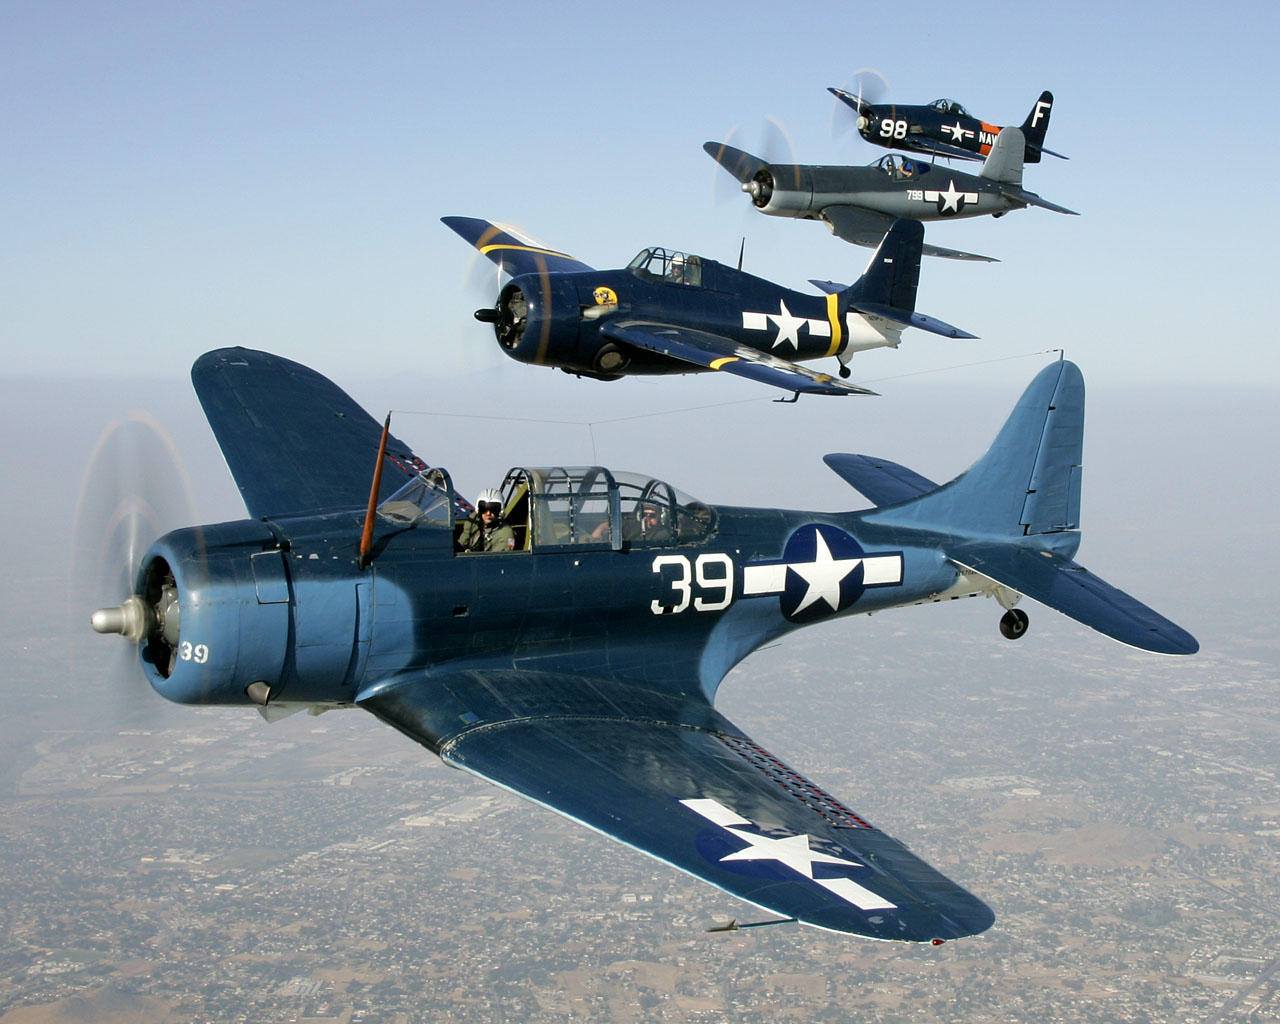 Douglas SBD Dauntless wallpapers, Military, HQ Douglas SBD